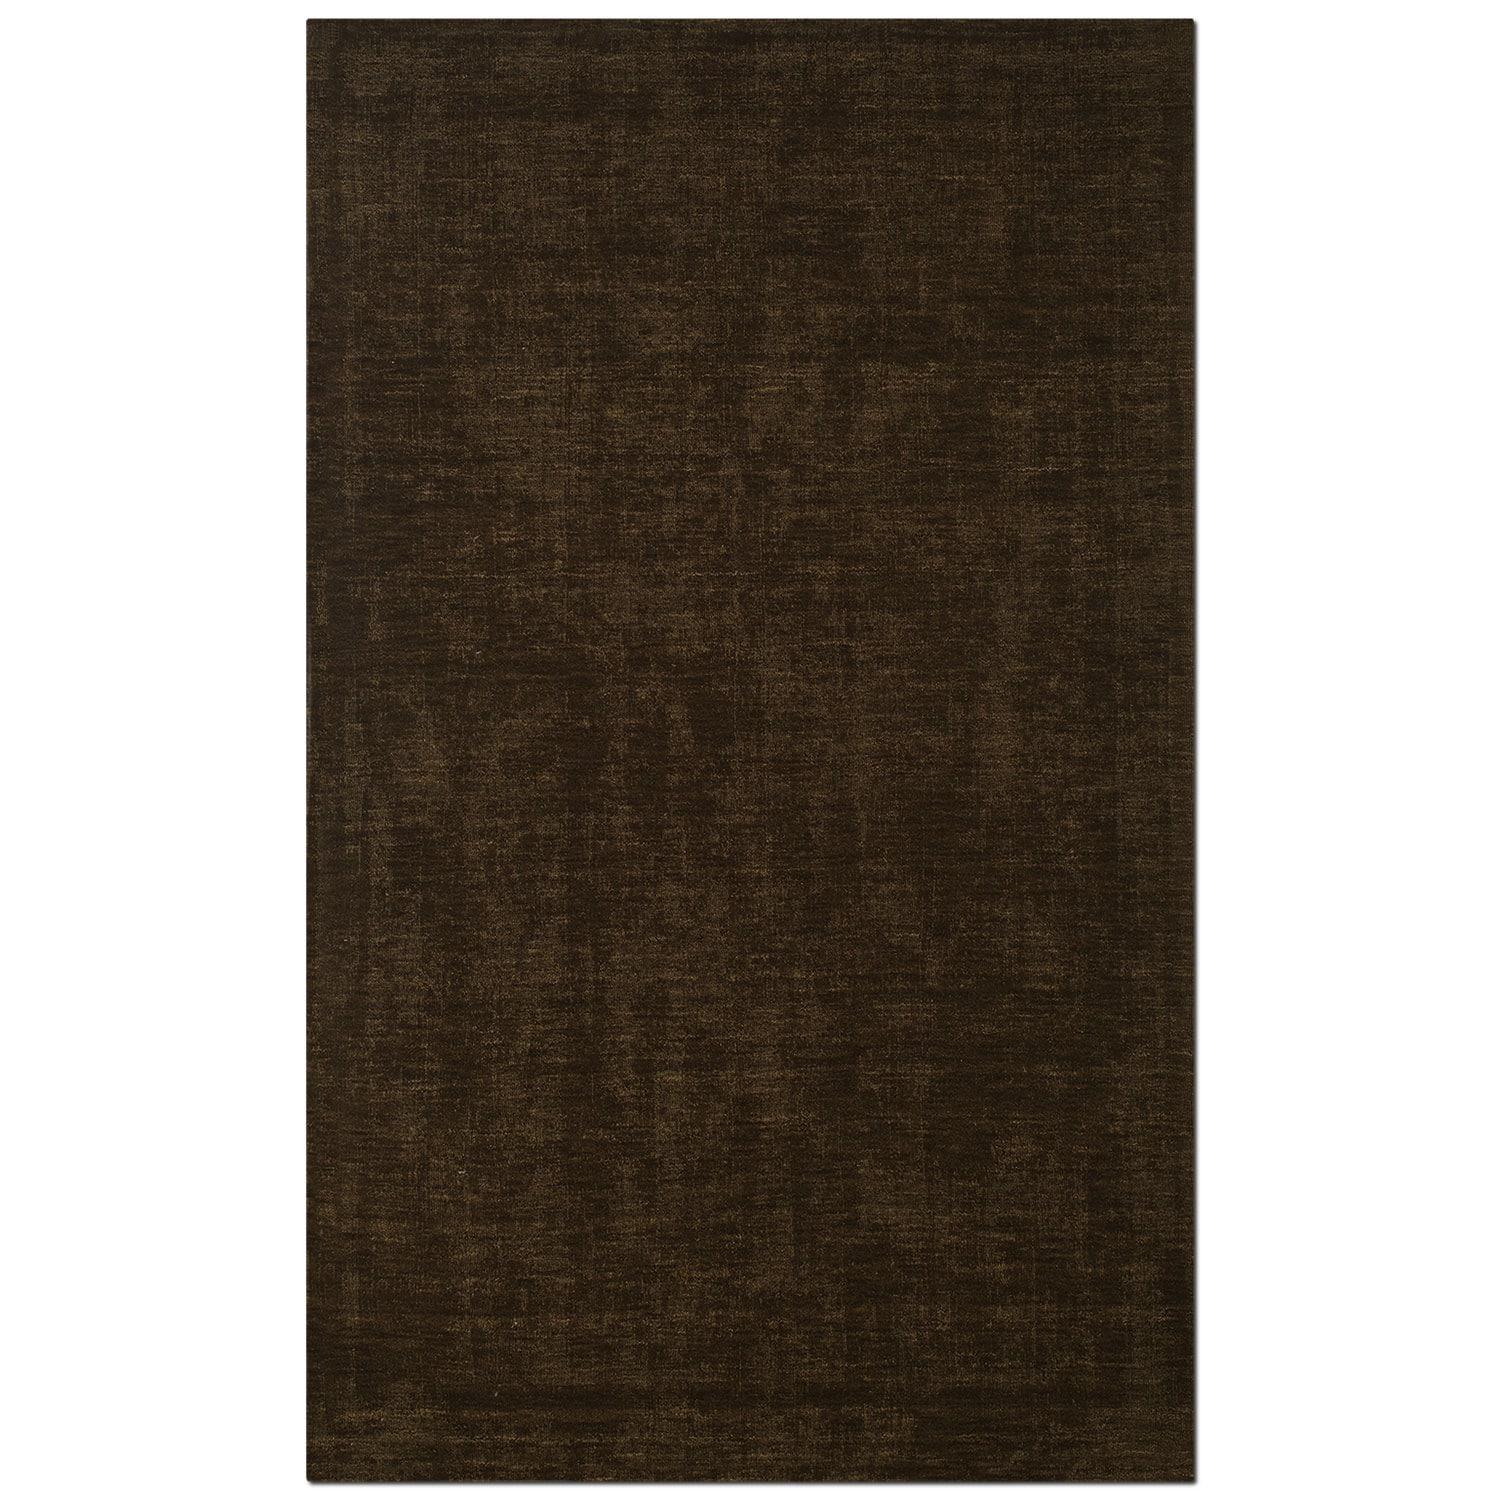 Rugs - Basics 8' x 10' Area Rug - Medium Brown